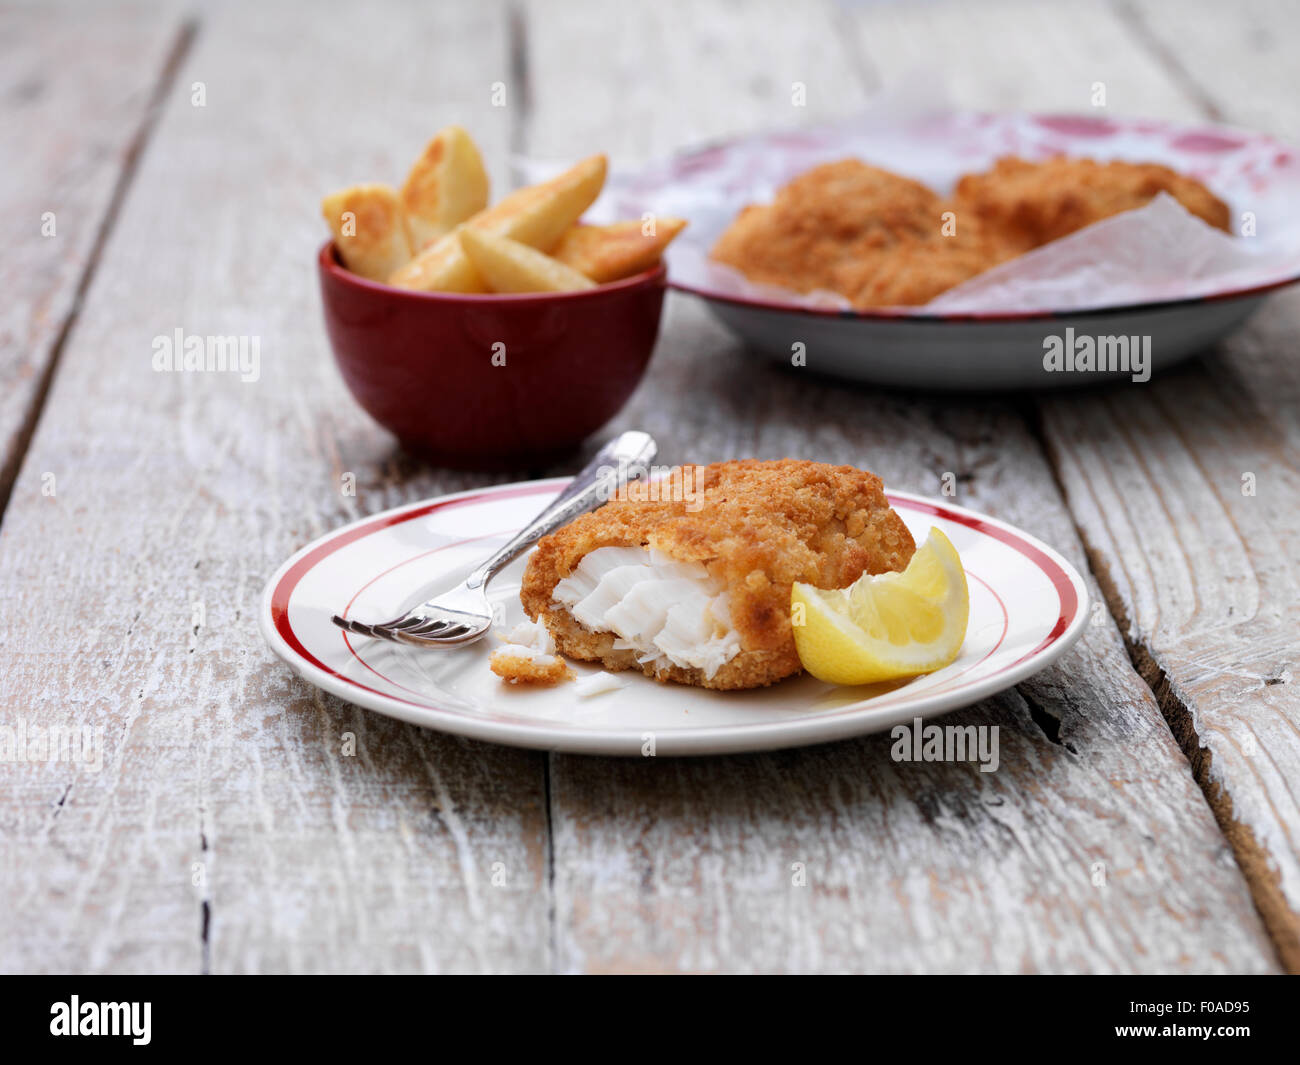 Breaded chunky cod with bowl of french fries on wooden table Stock Photo